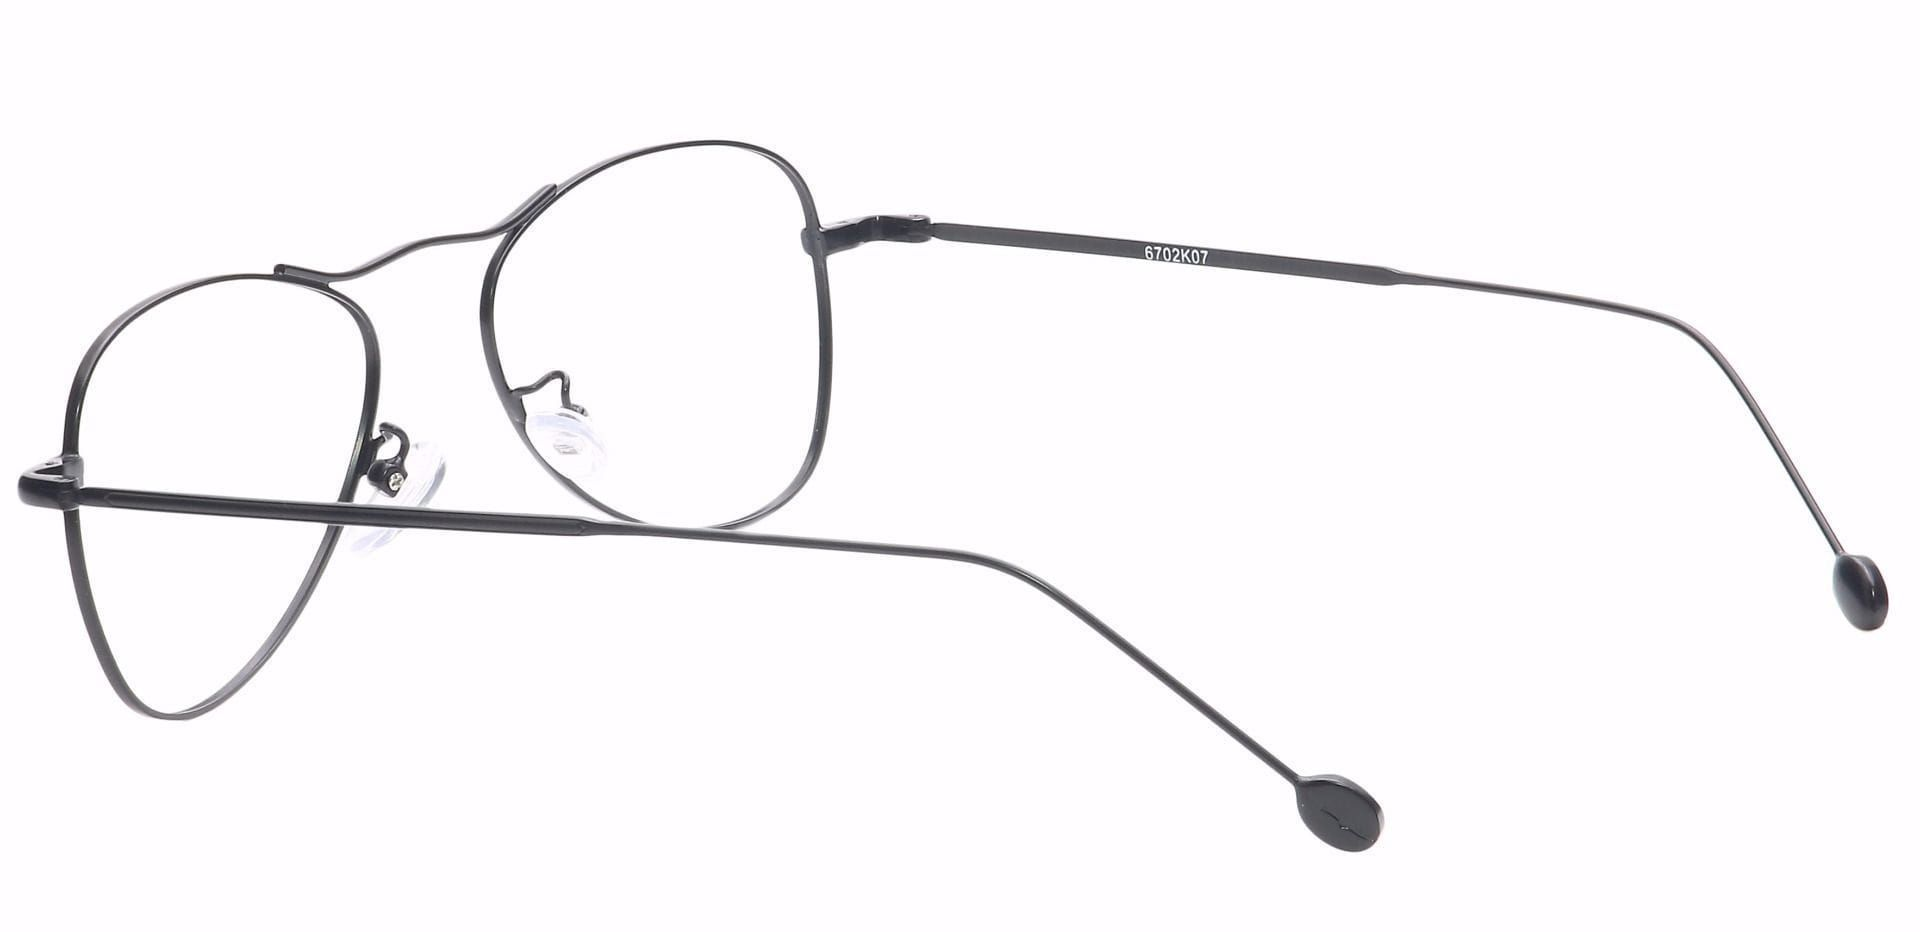 Brio Aviator Prescription Glasses - Black